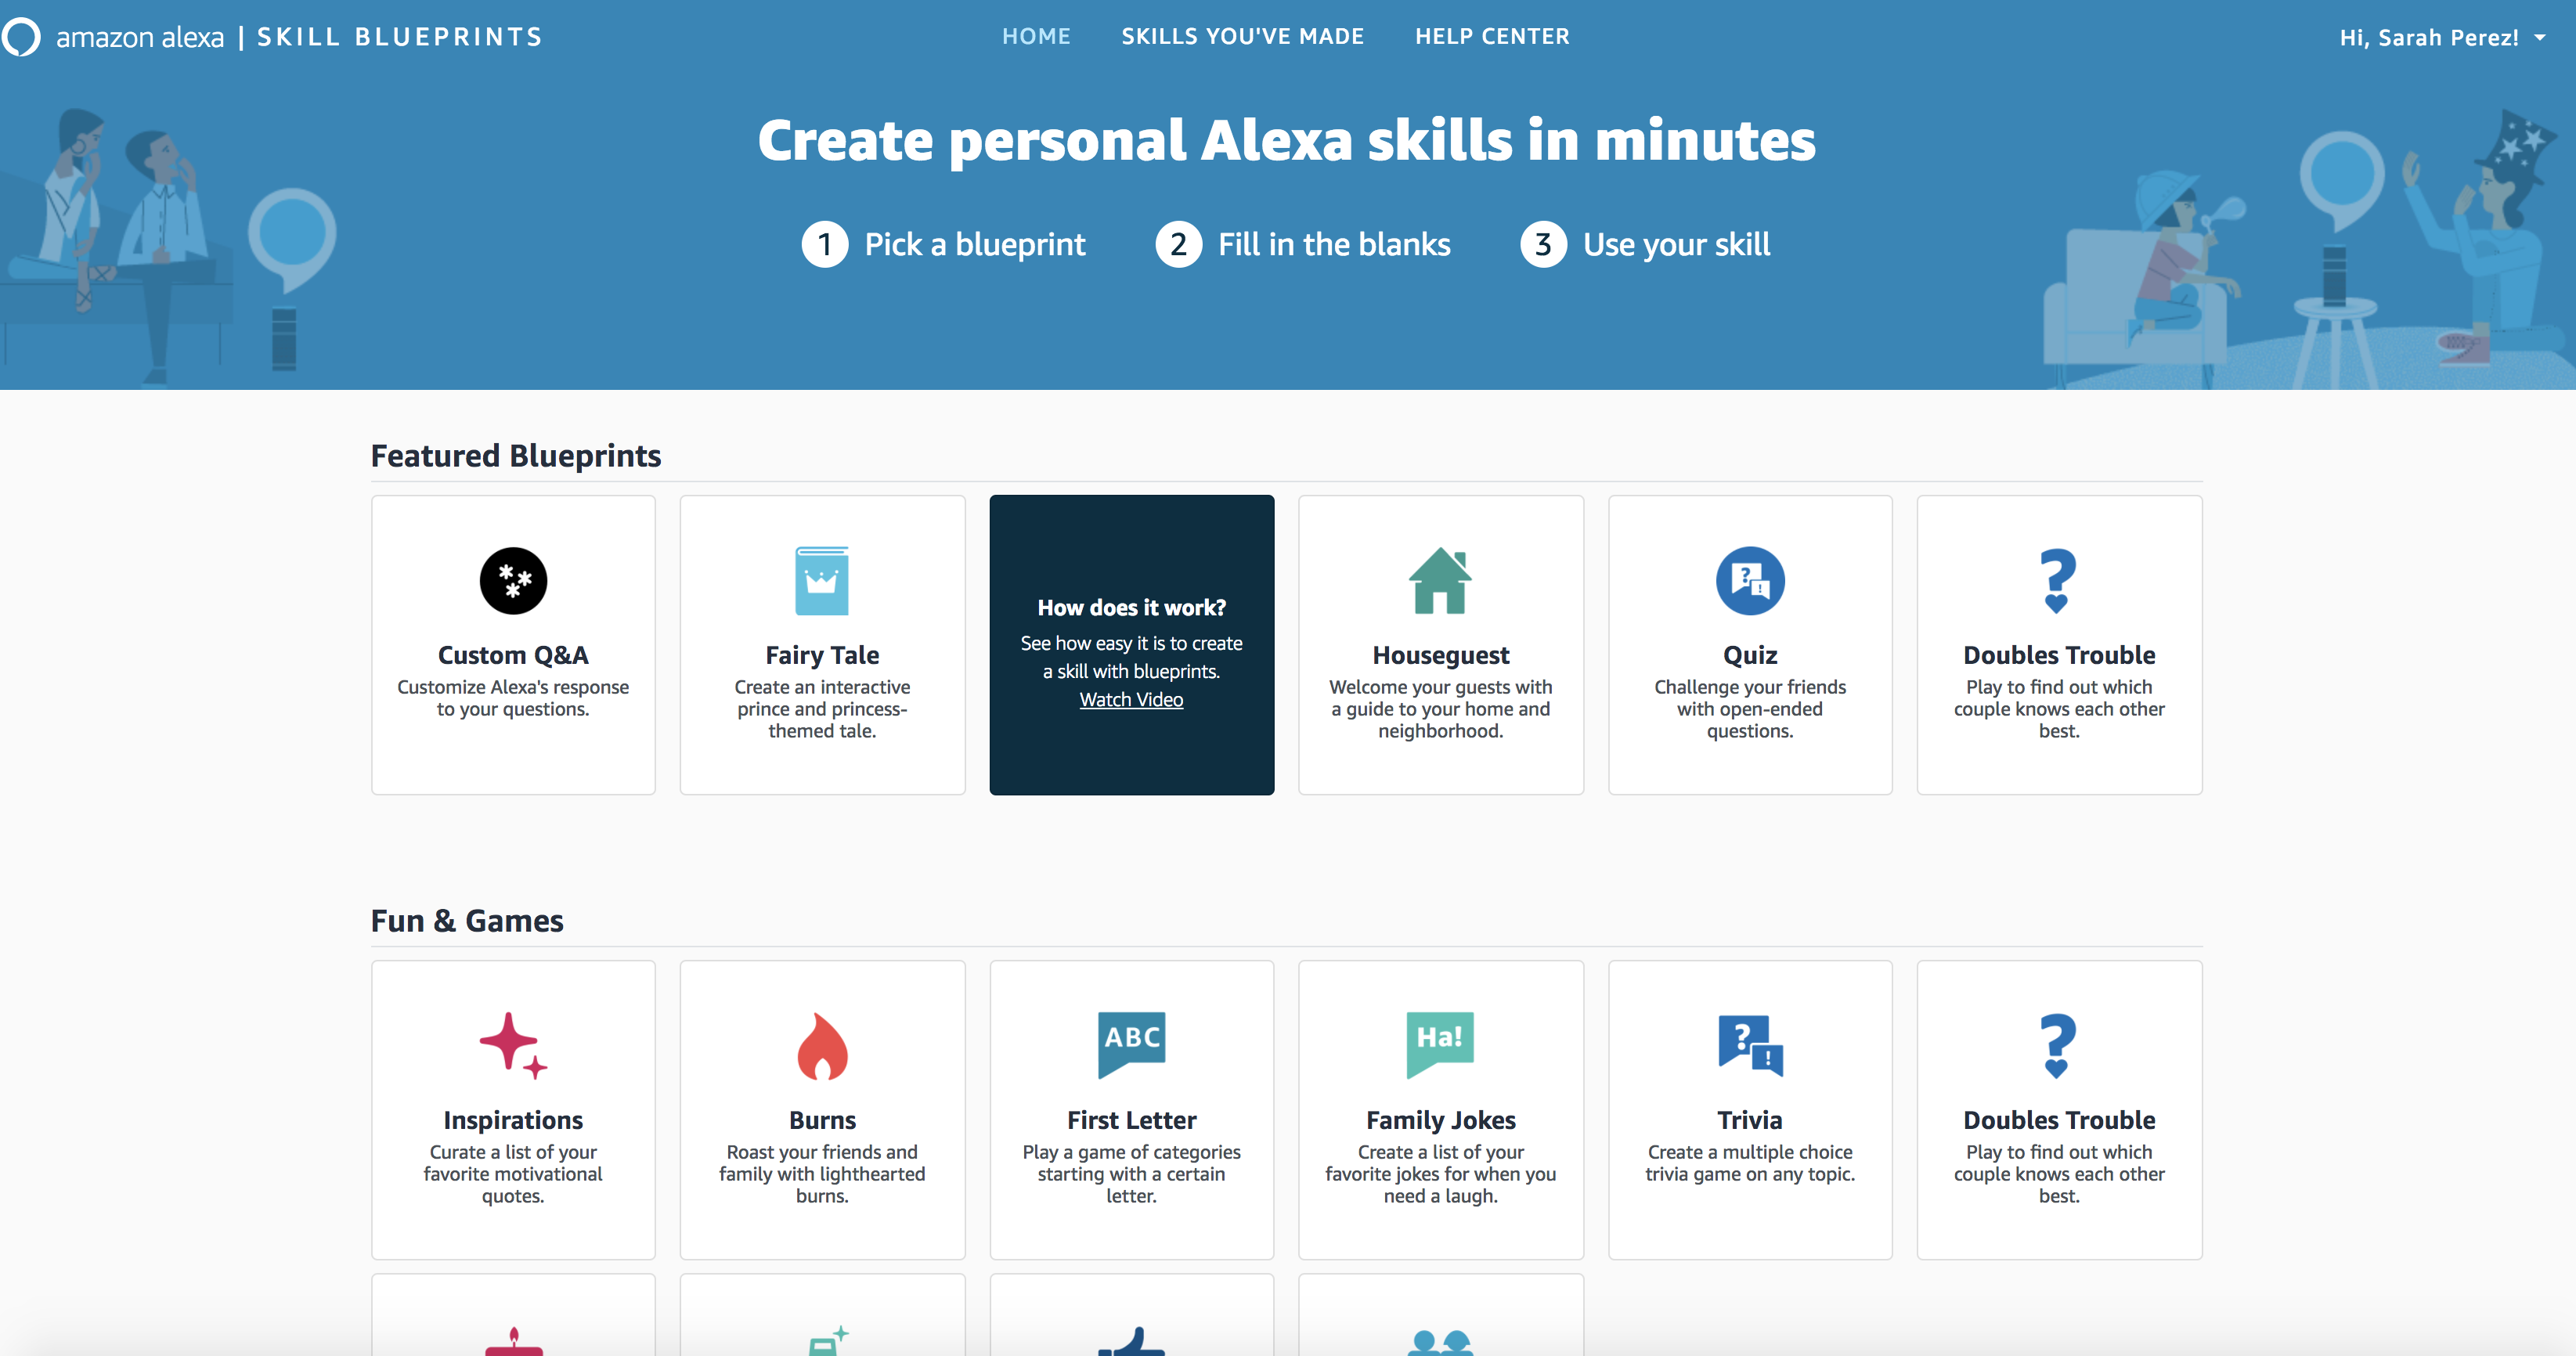 Amazon opens up Alexa skills to the masses